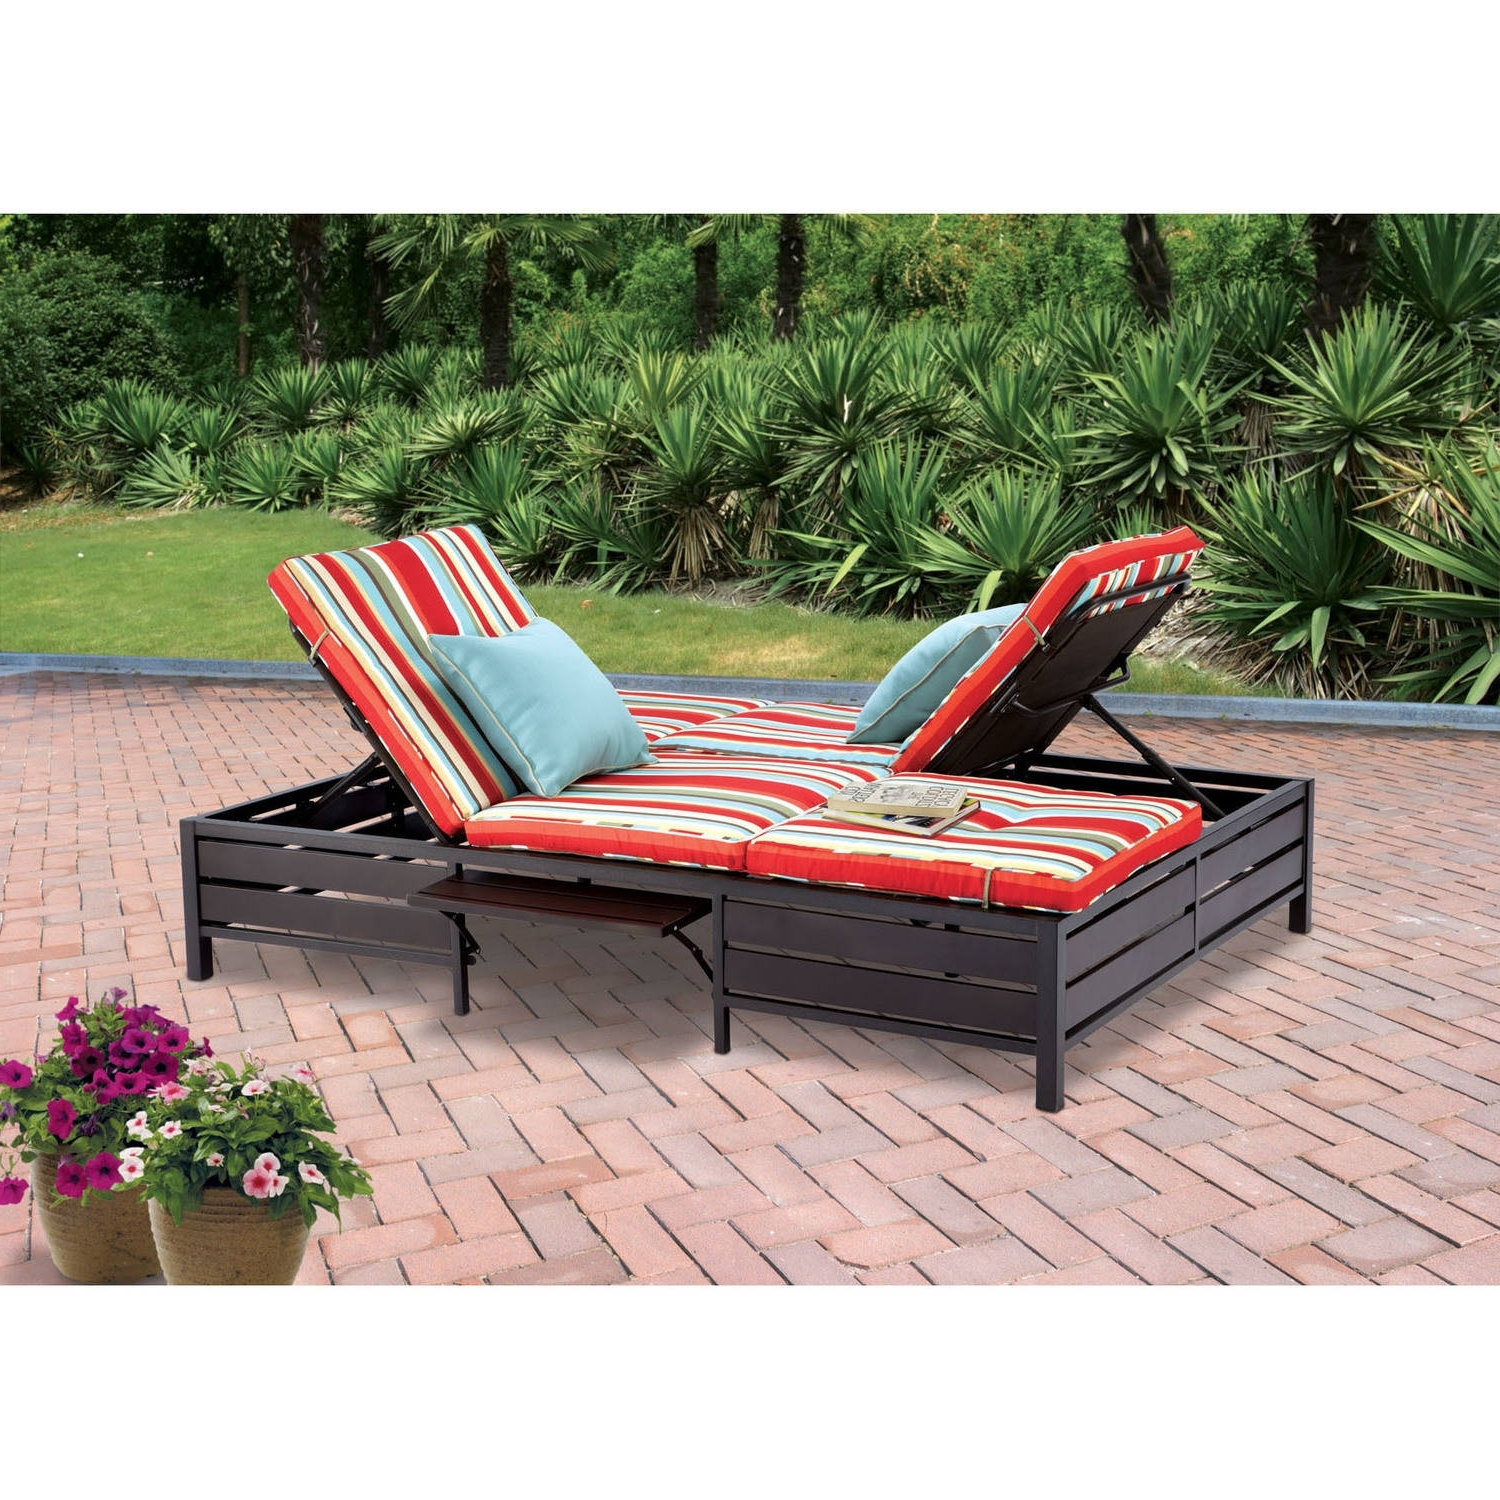 Most Popular Outdoor Chaise Lounge Chairs At Walmart Regarding Mainstays Outdoor Double Chaise Lounger, Stripe, Seats 2 – Walmart (View 7 of 15)